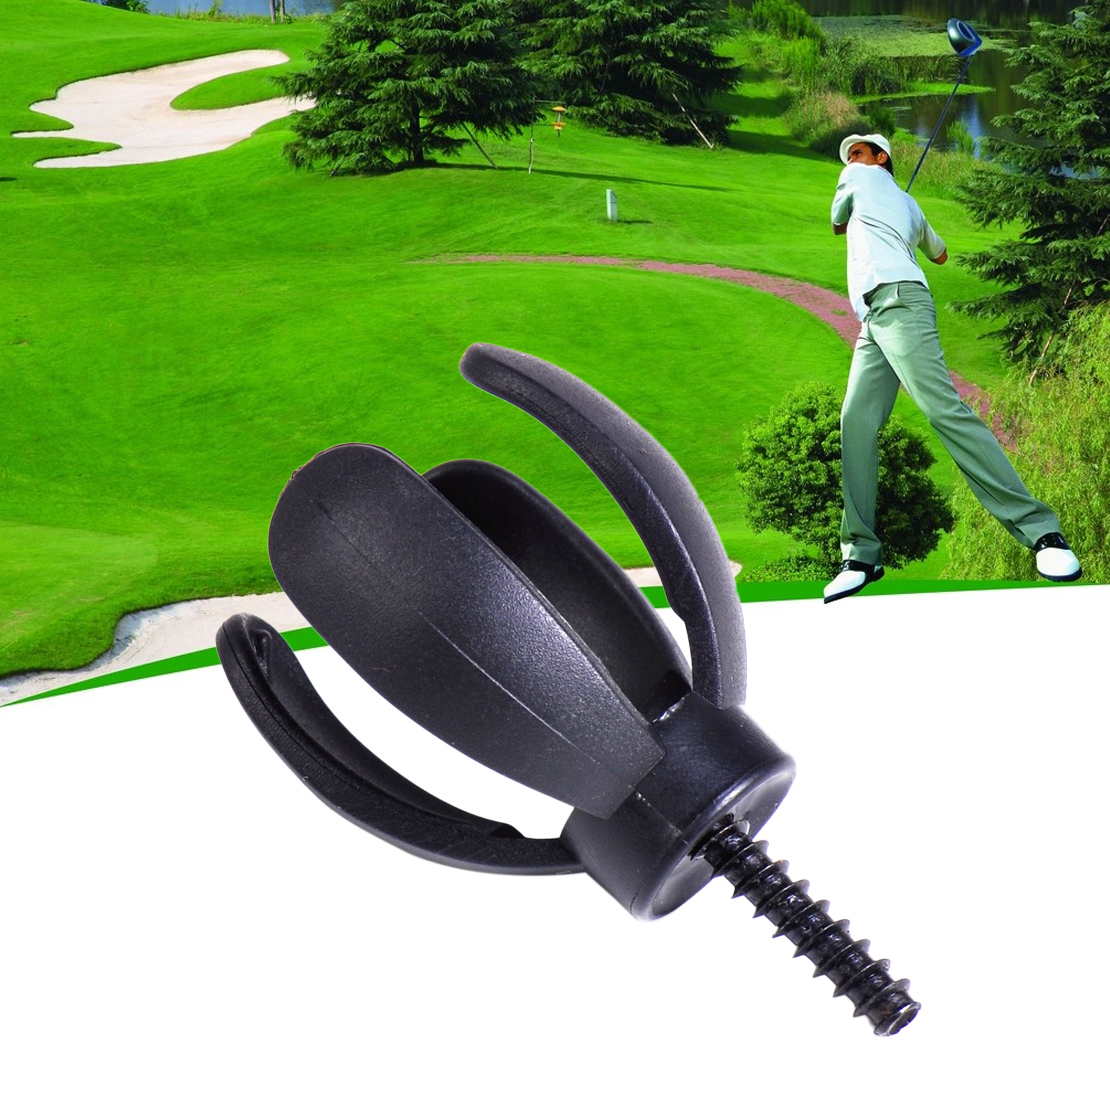 1pc New 4 Prongs Black Durable Golf Ball Grabber Pickup Claw Pick Up Tool Retriever 4-Prong for Putter Grip Golf Training Aid(China (Mainland))